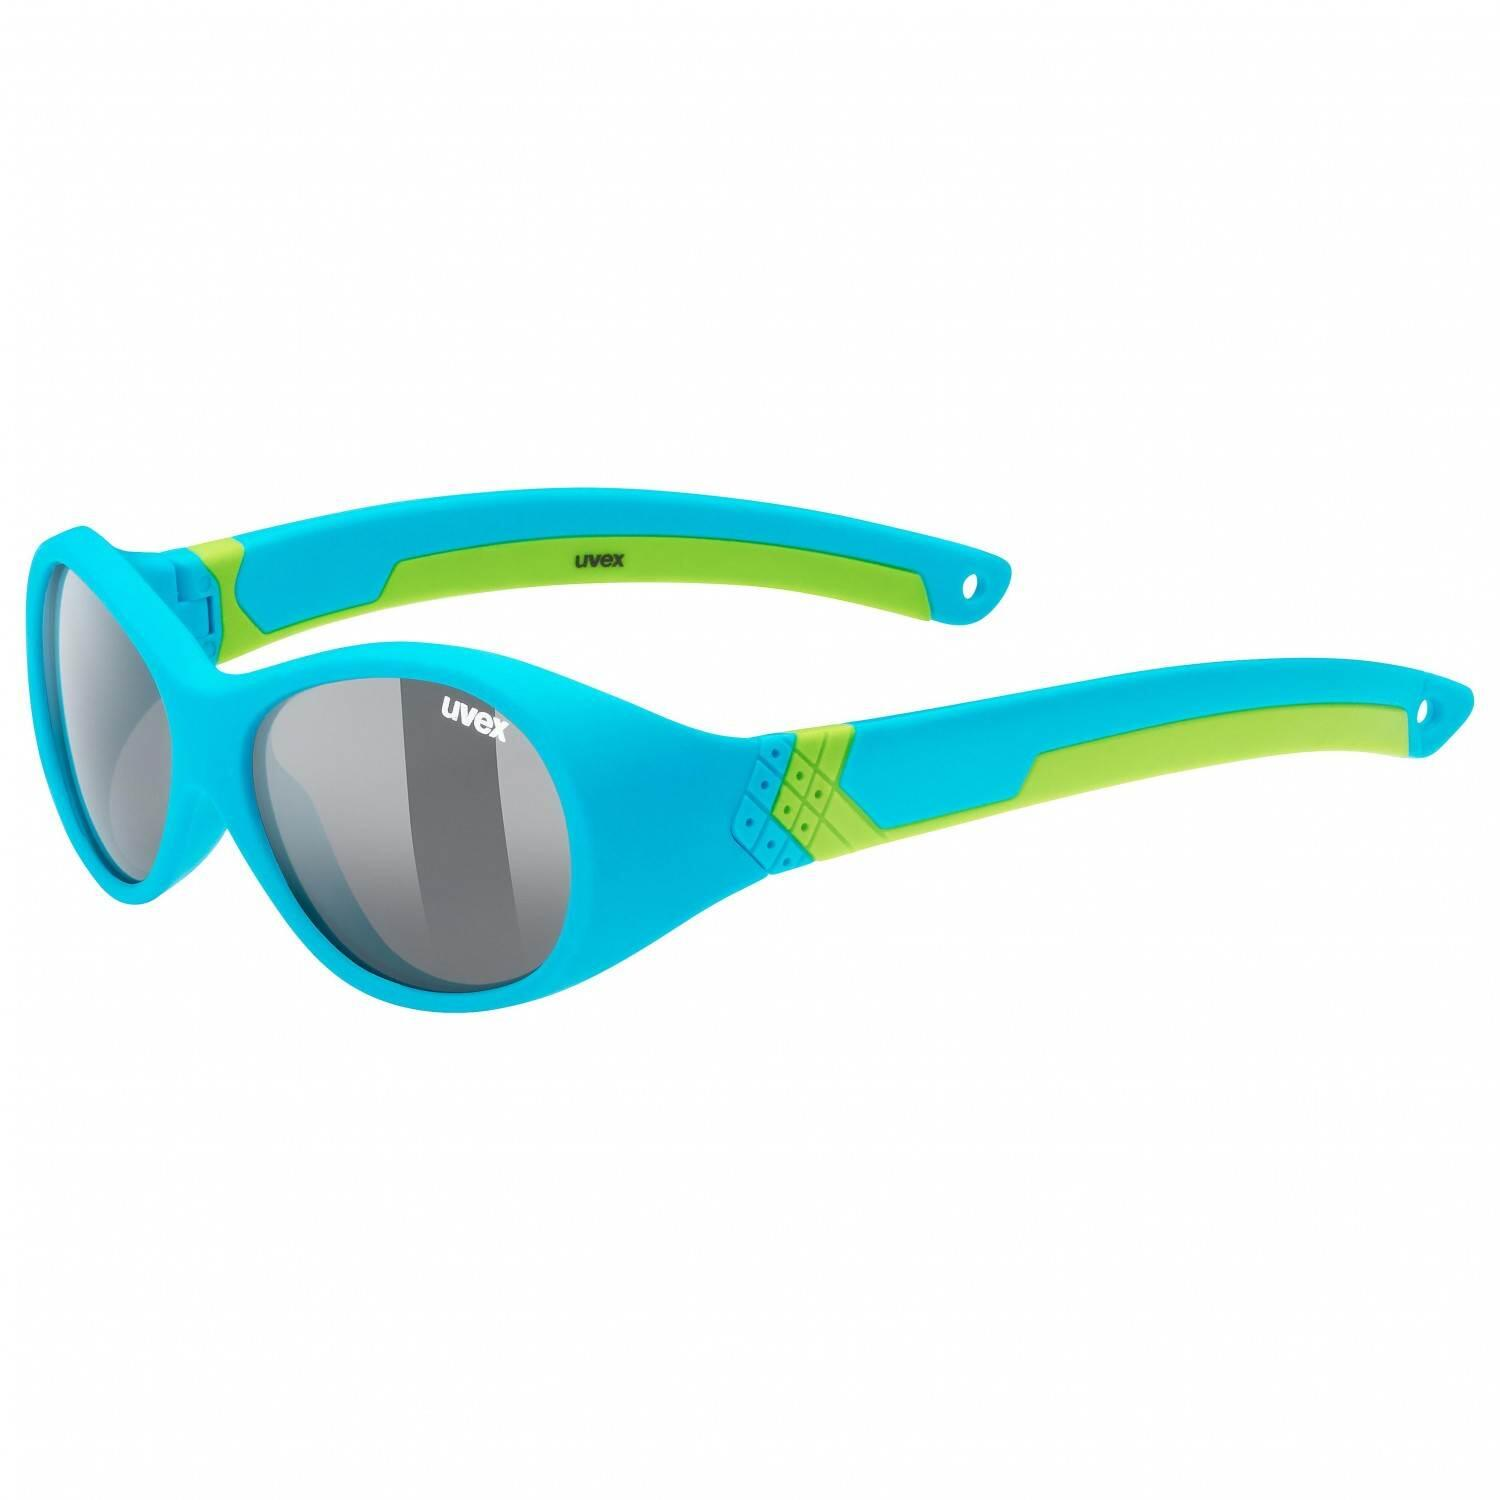 uvex-sportstyle-510-kinder-sportbrille-farbe-7816-turquoise-white-mat-mirror-green-s3-